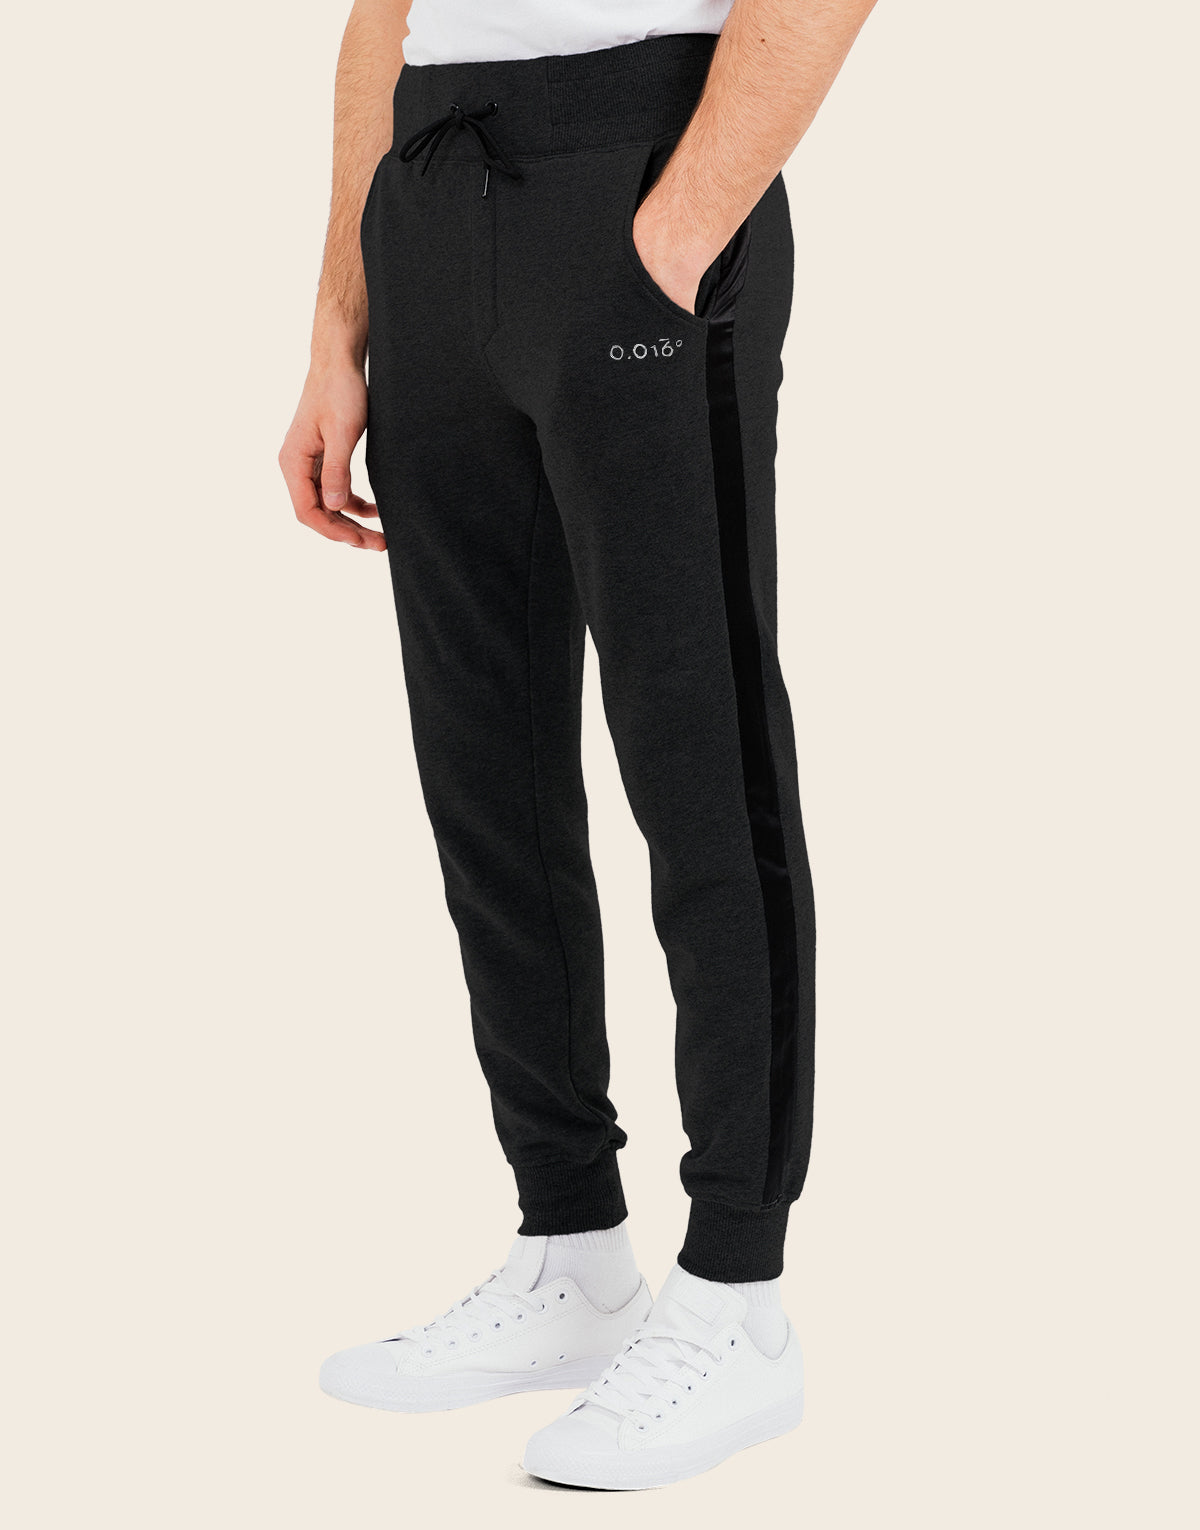 Statement Joggers Black - Arcminute